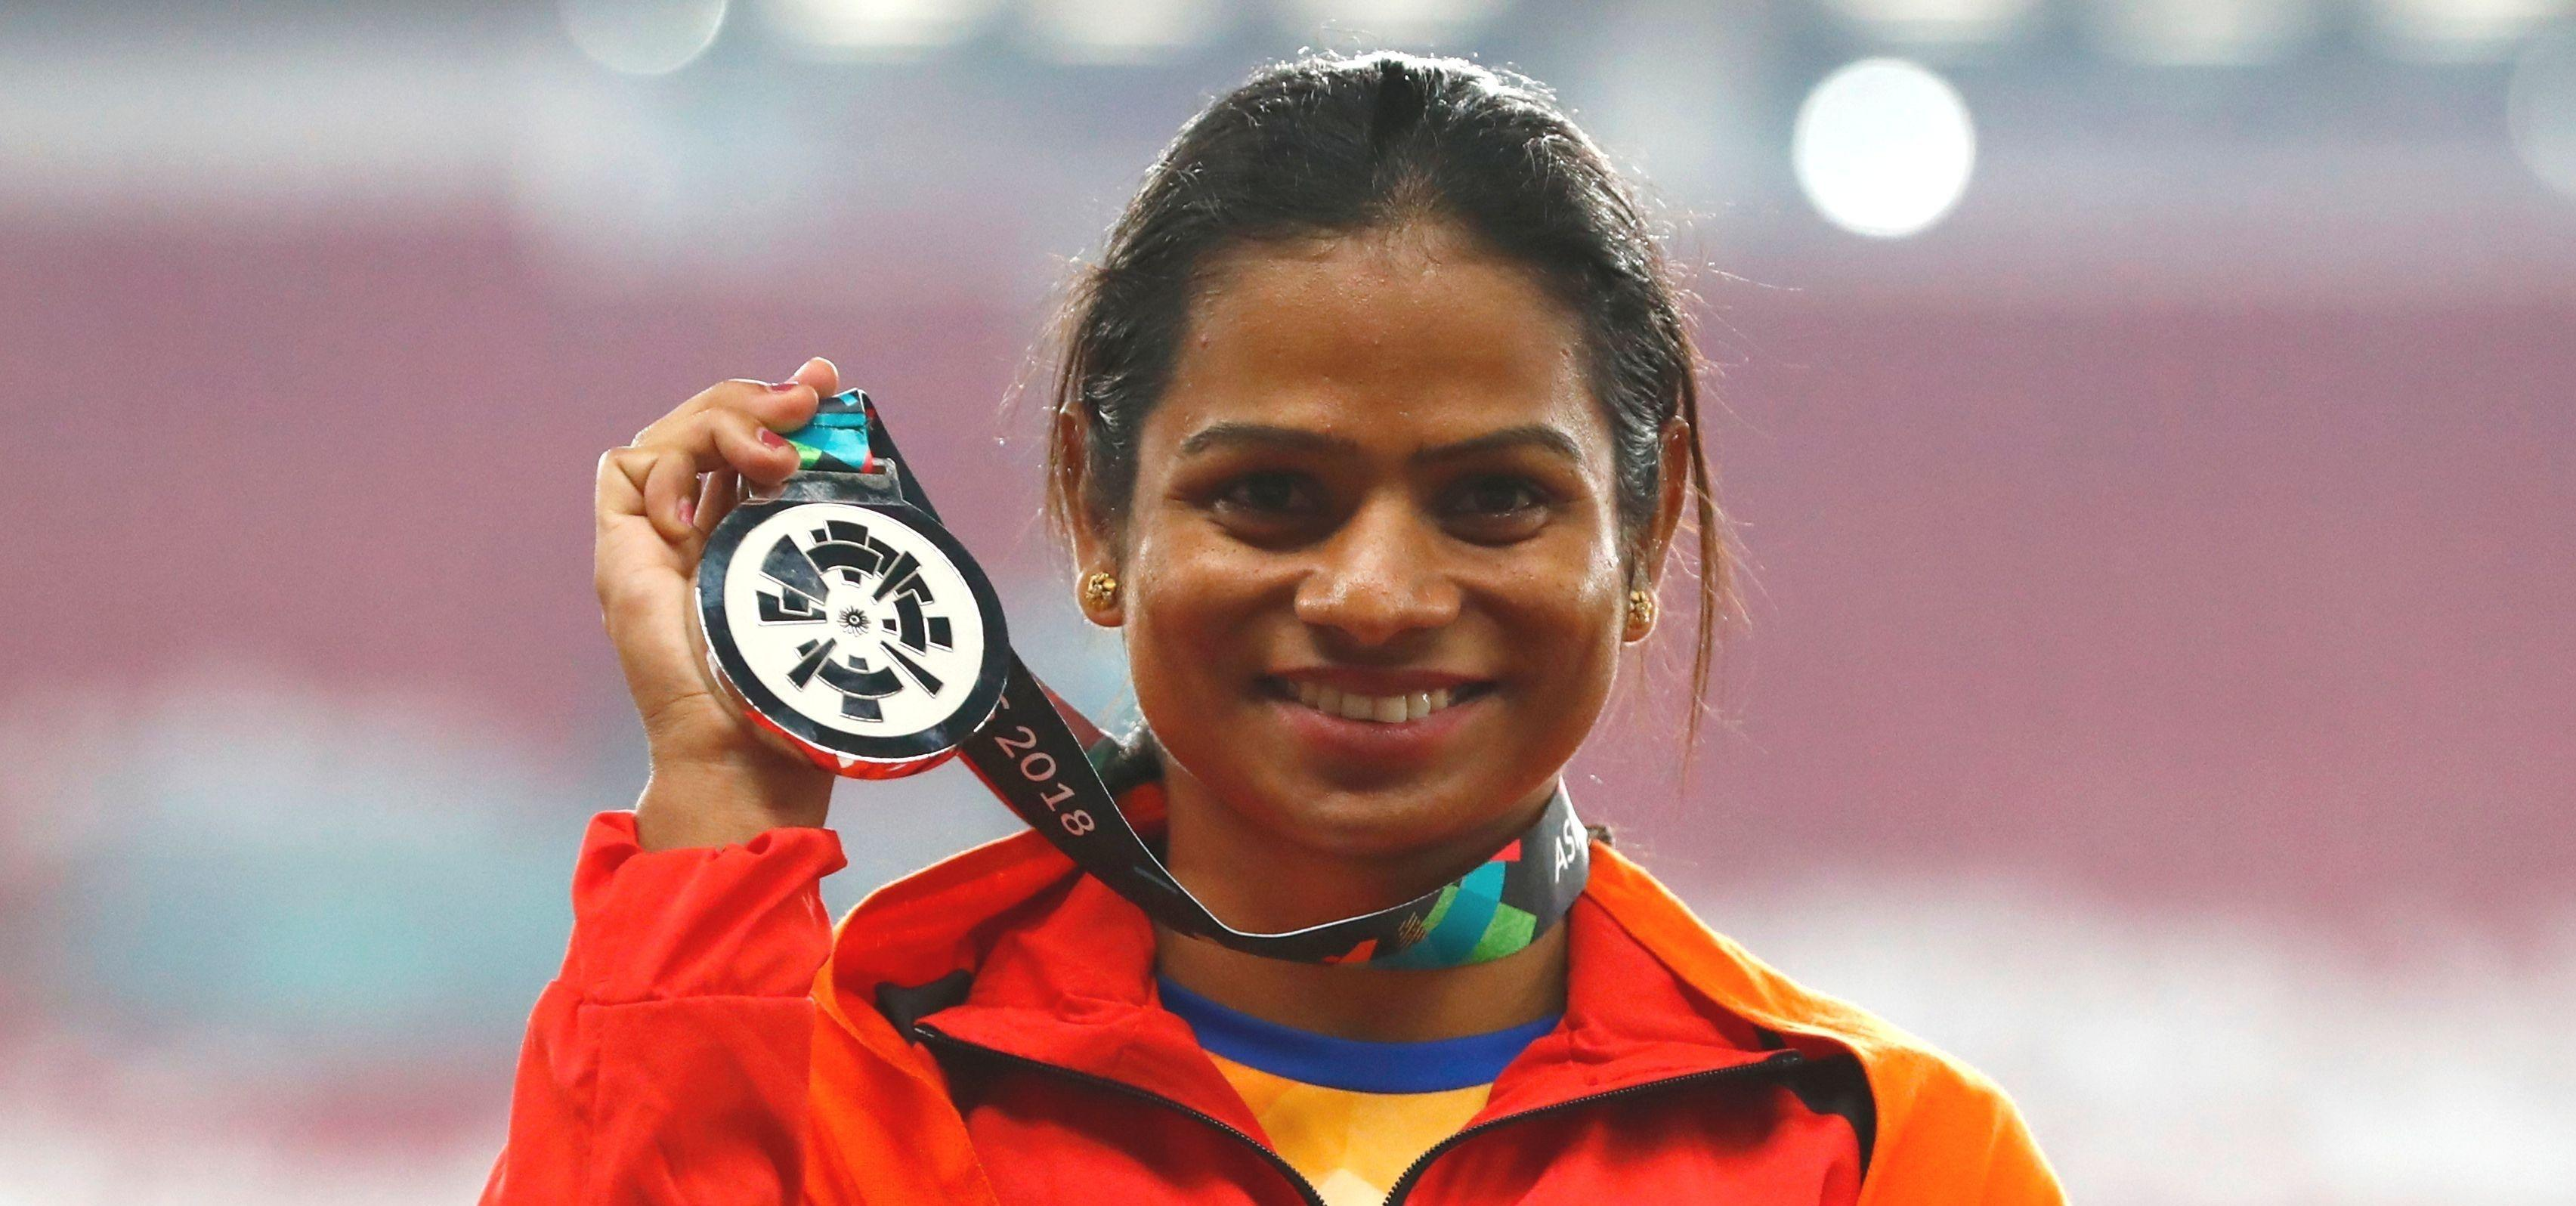 Dutee Chand is a fighter